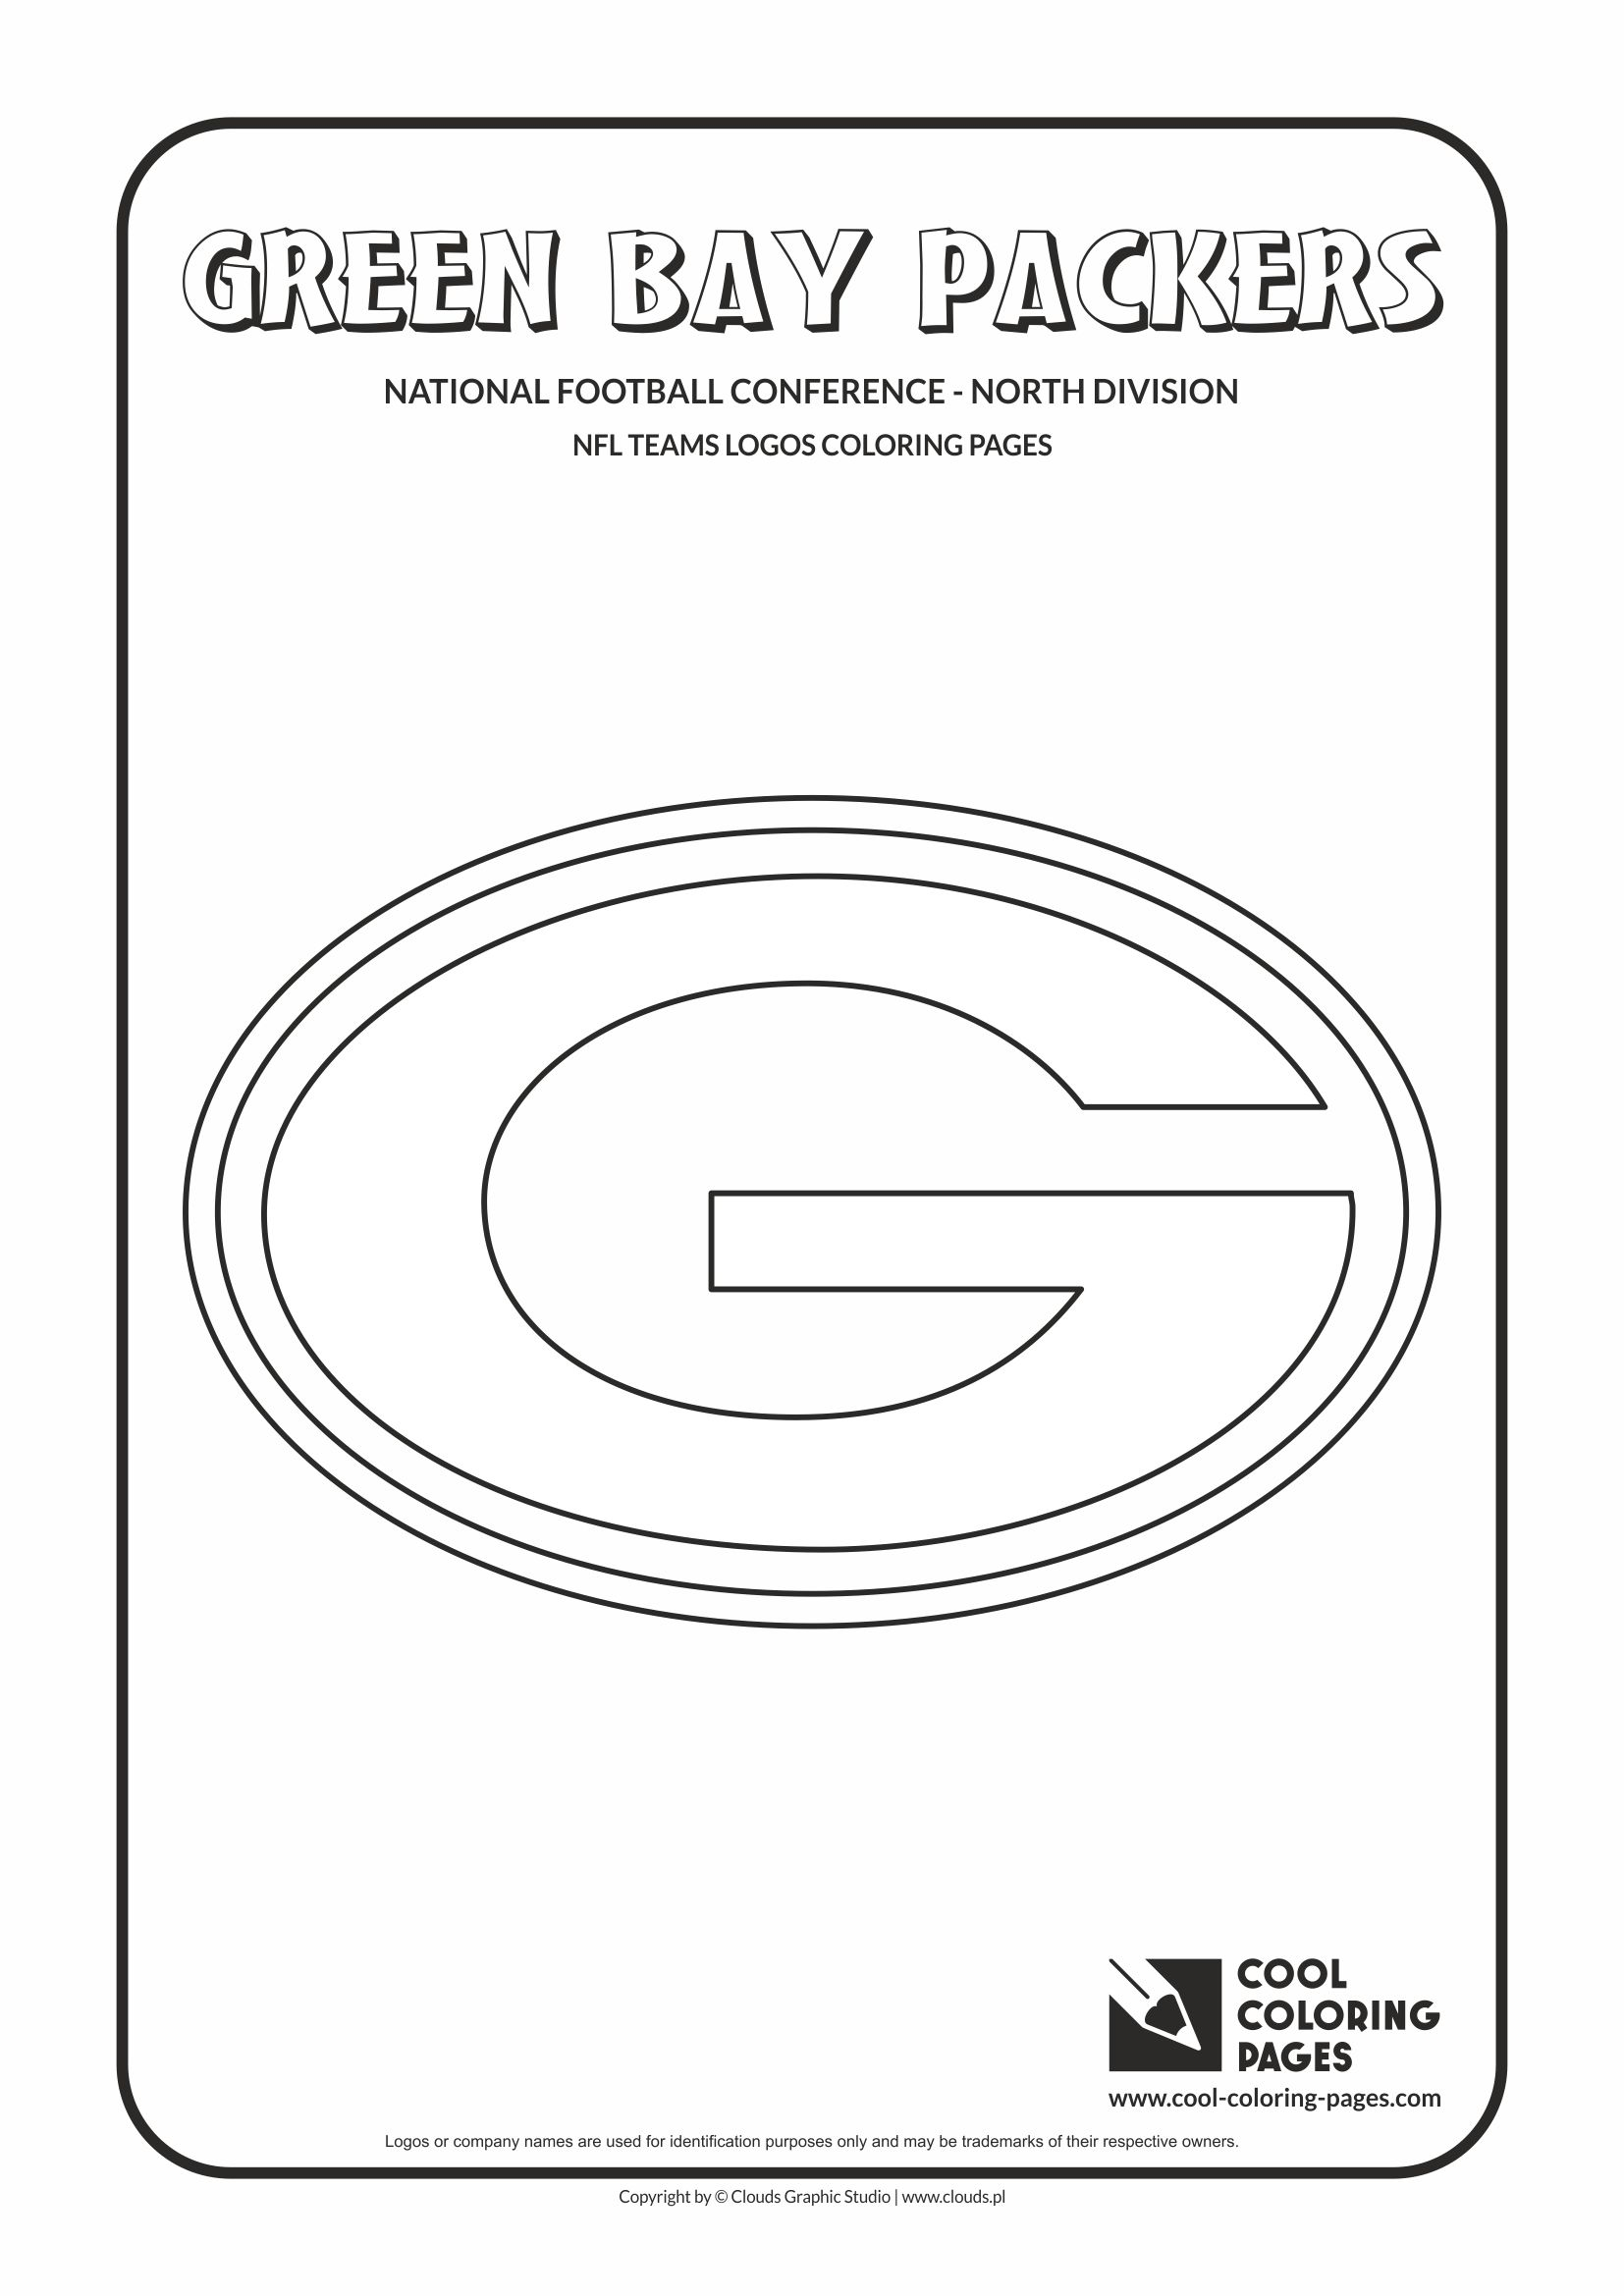 green bay packer coloring pages - photo#12